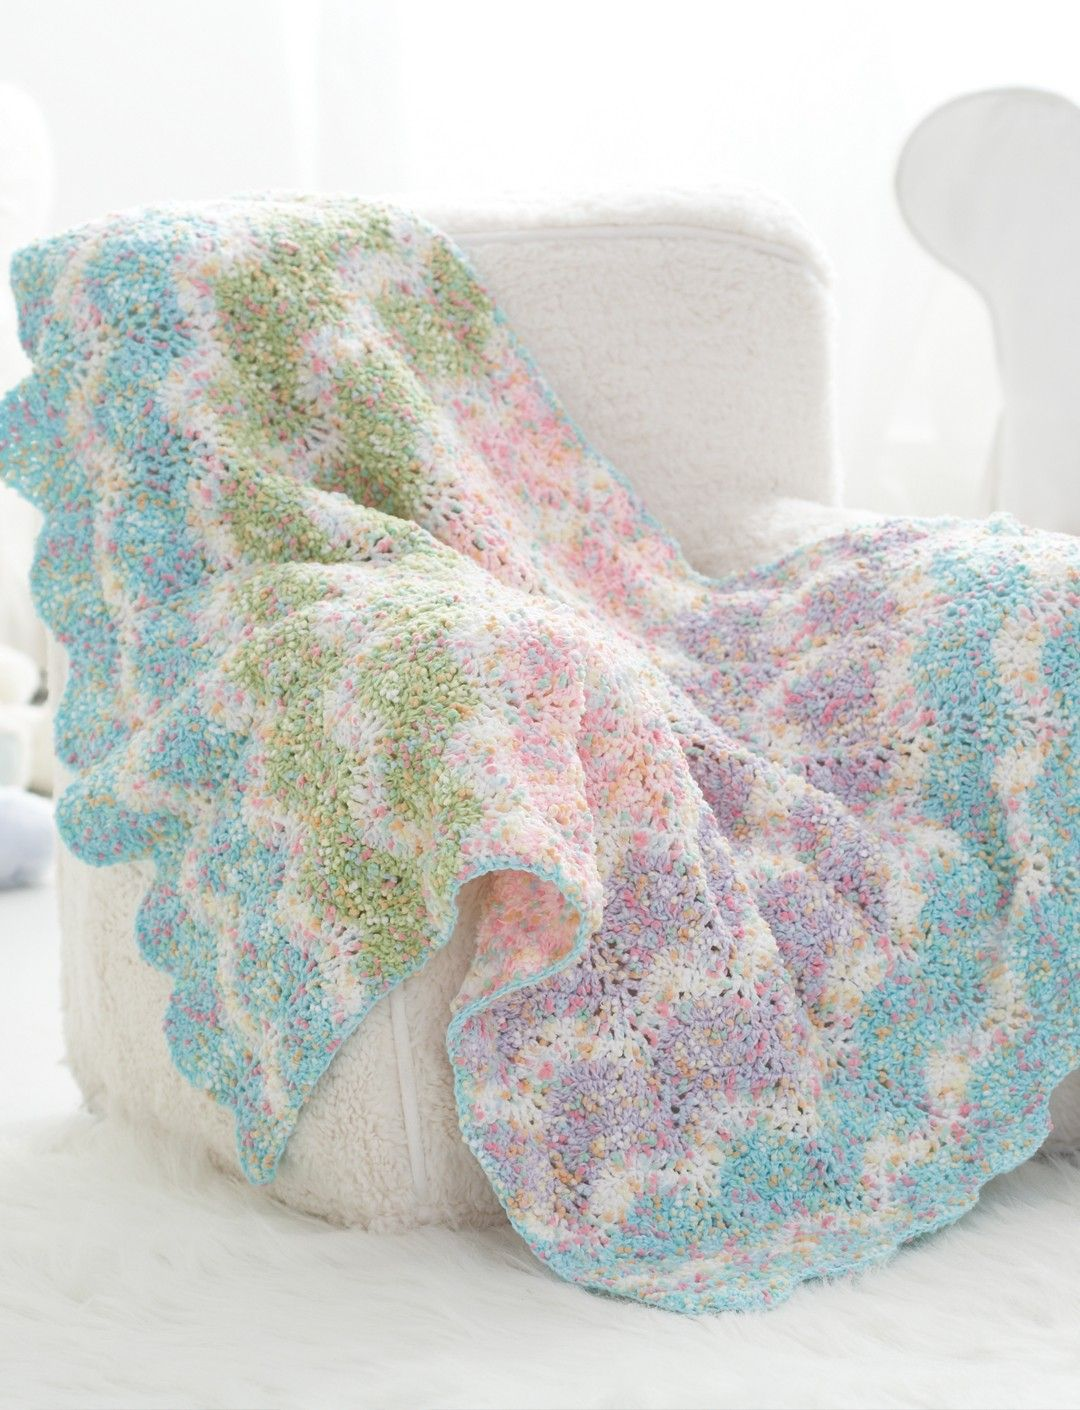 Yarnspirations.com - Bernat Chevron Stripes Baby Blanket - Patterns ...